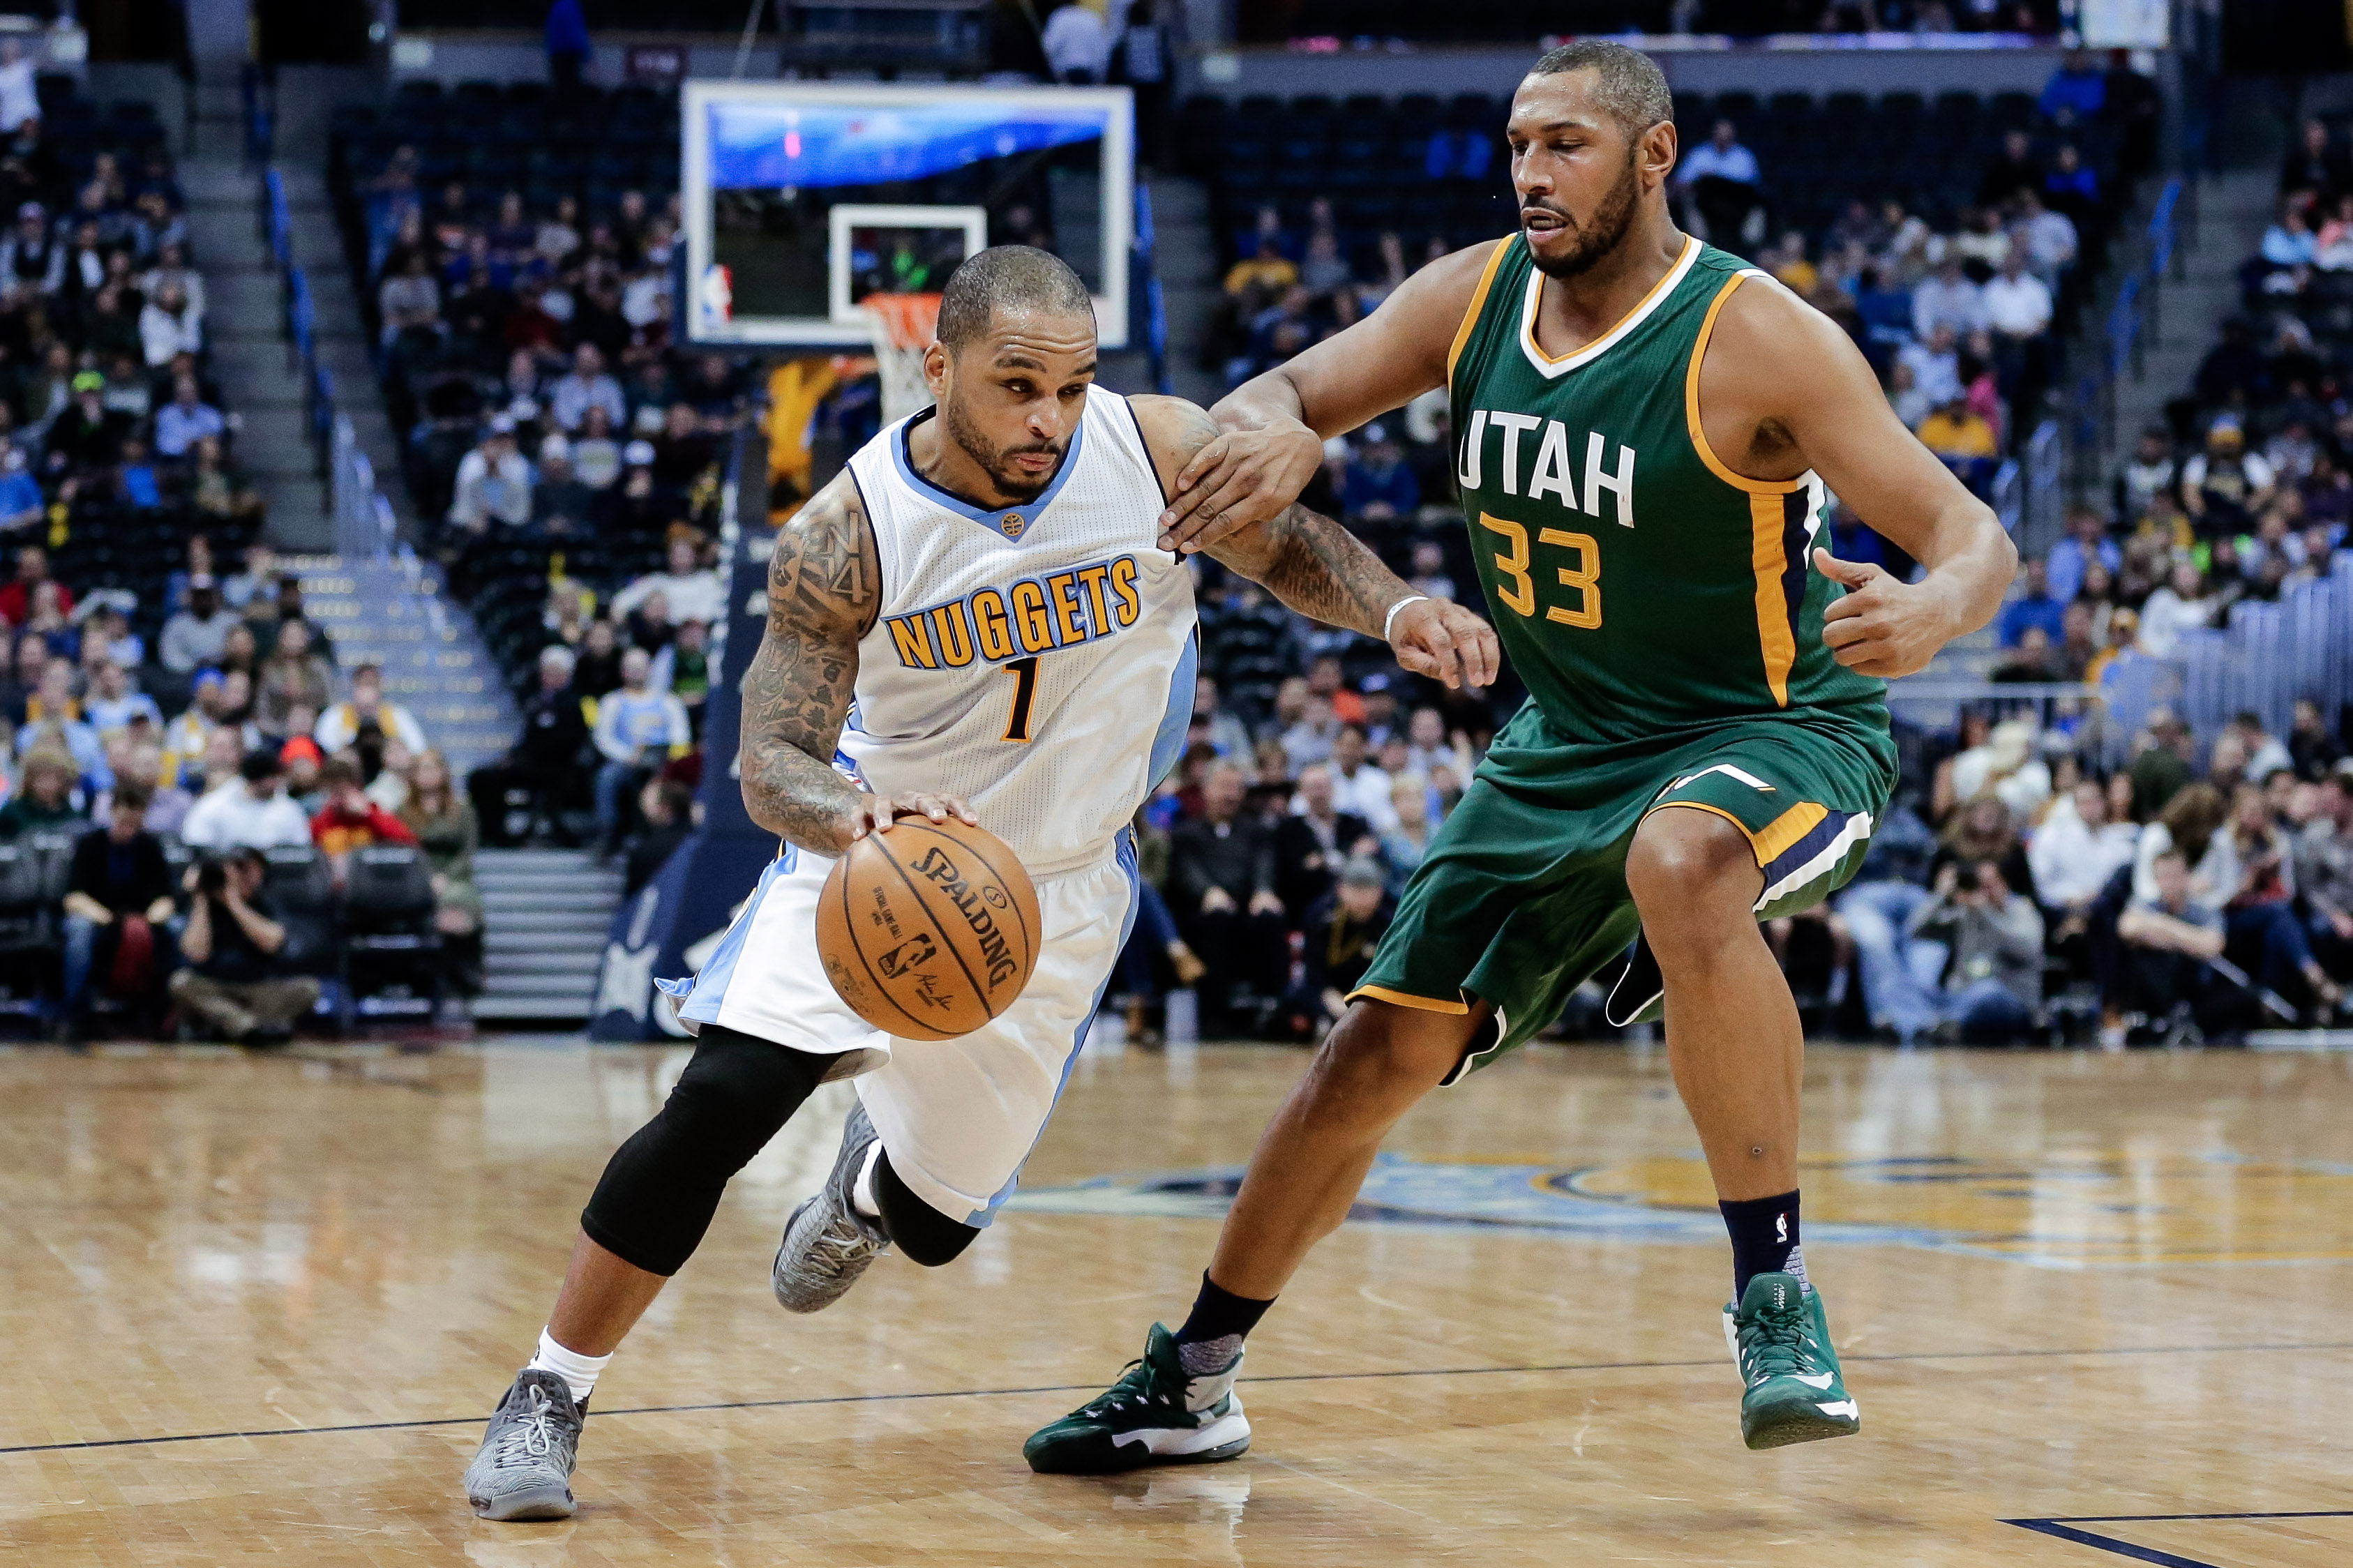 Jameer Nelson showed up for the Nug s in their last game